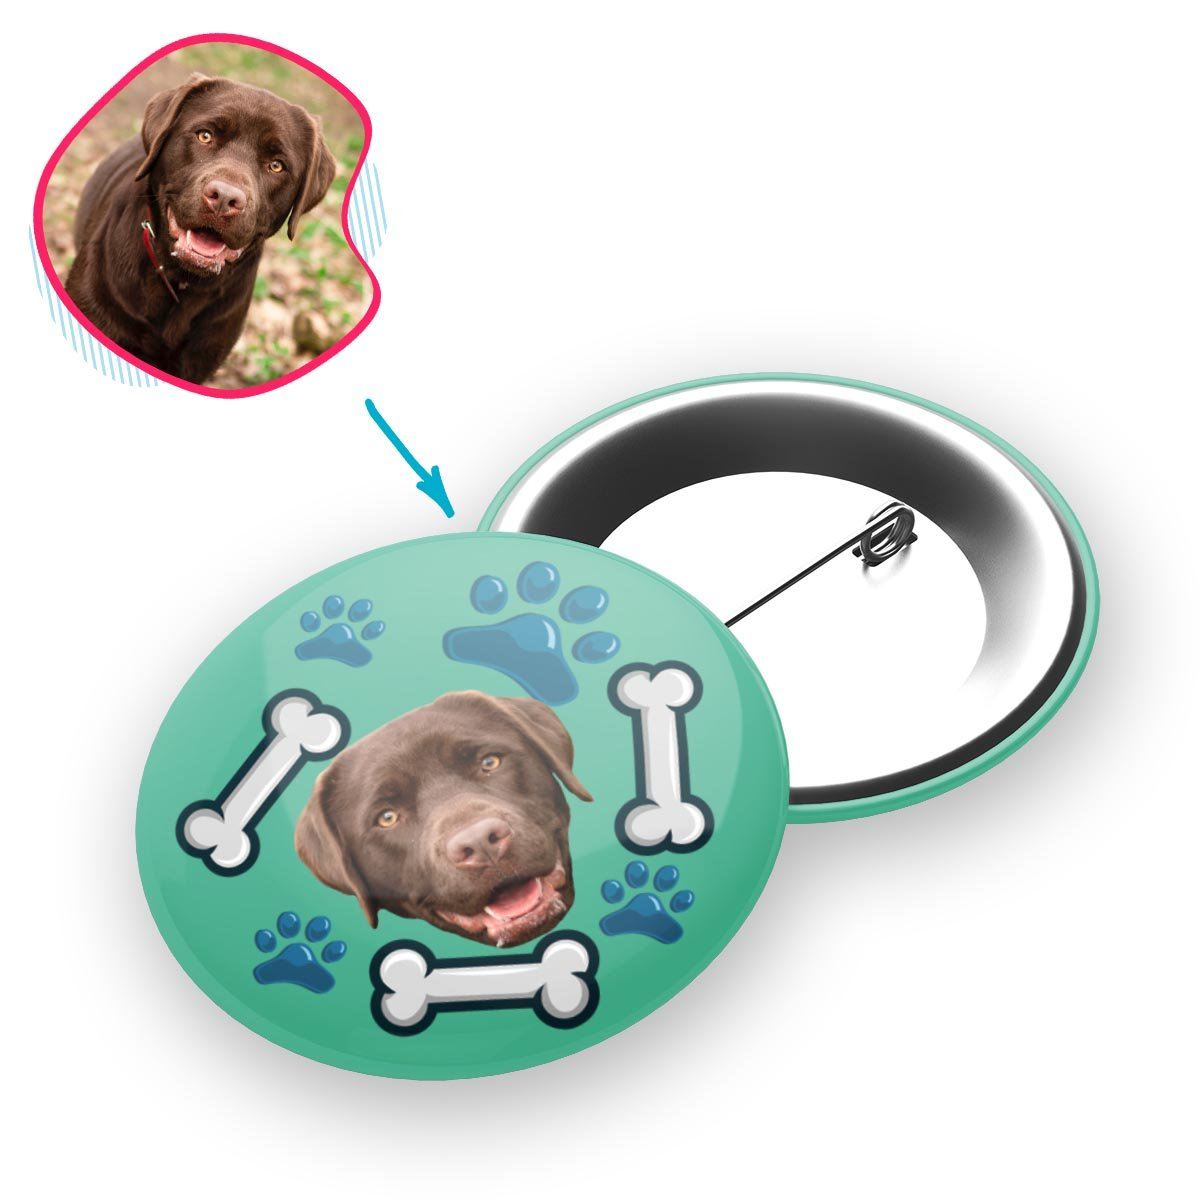 mint Dog pin personalized with photo of face printed on it